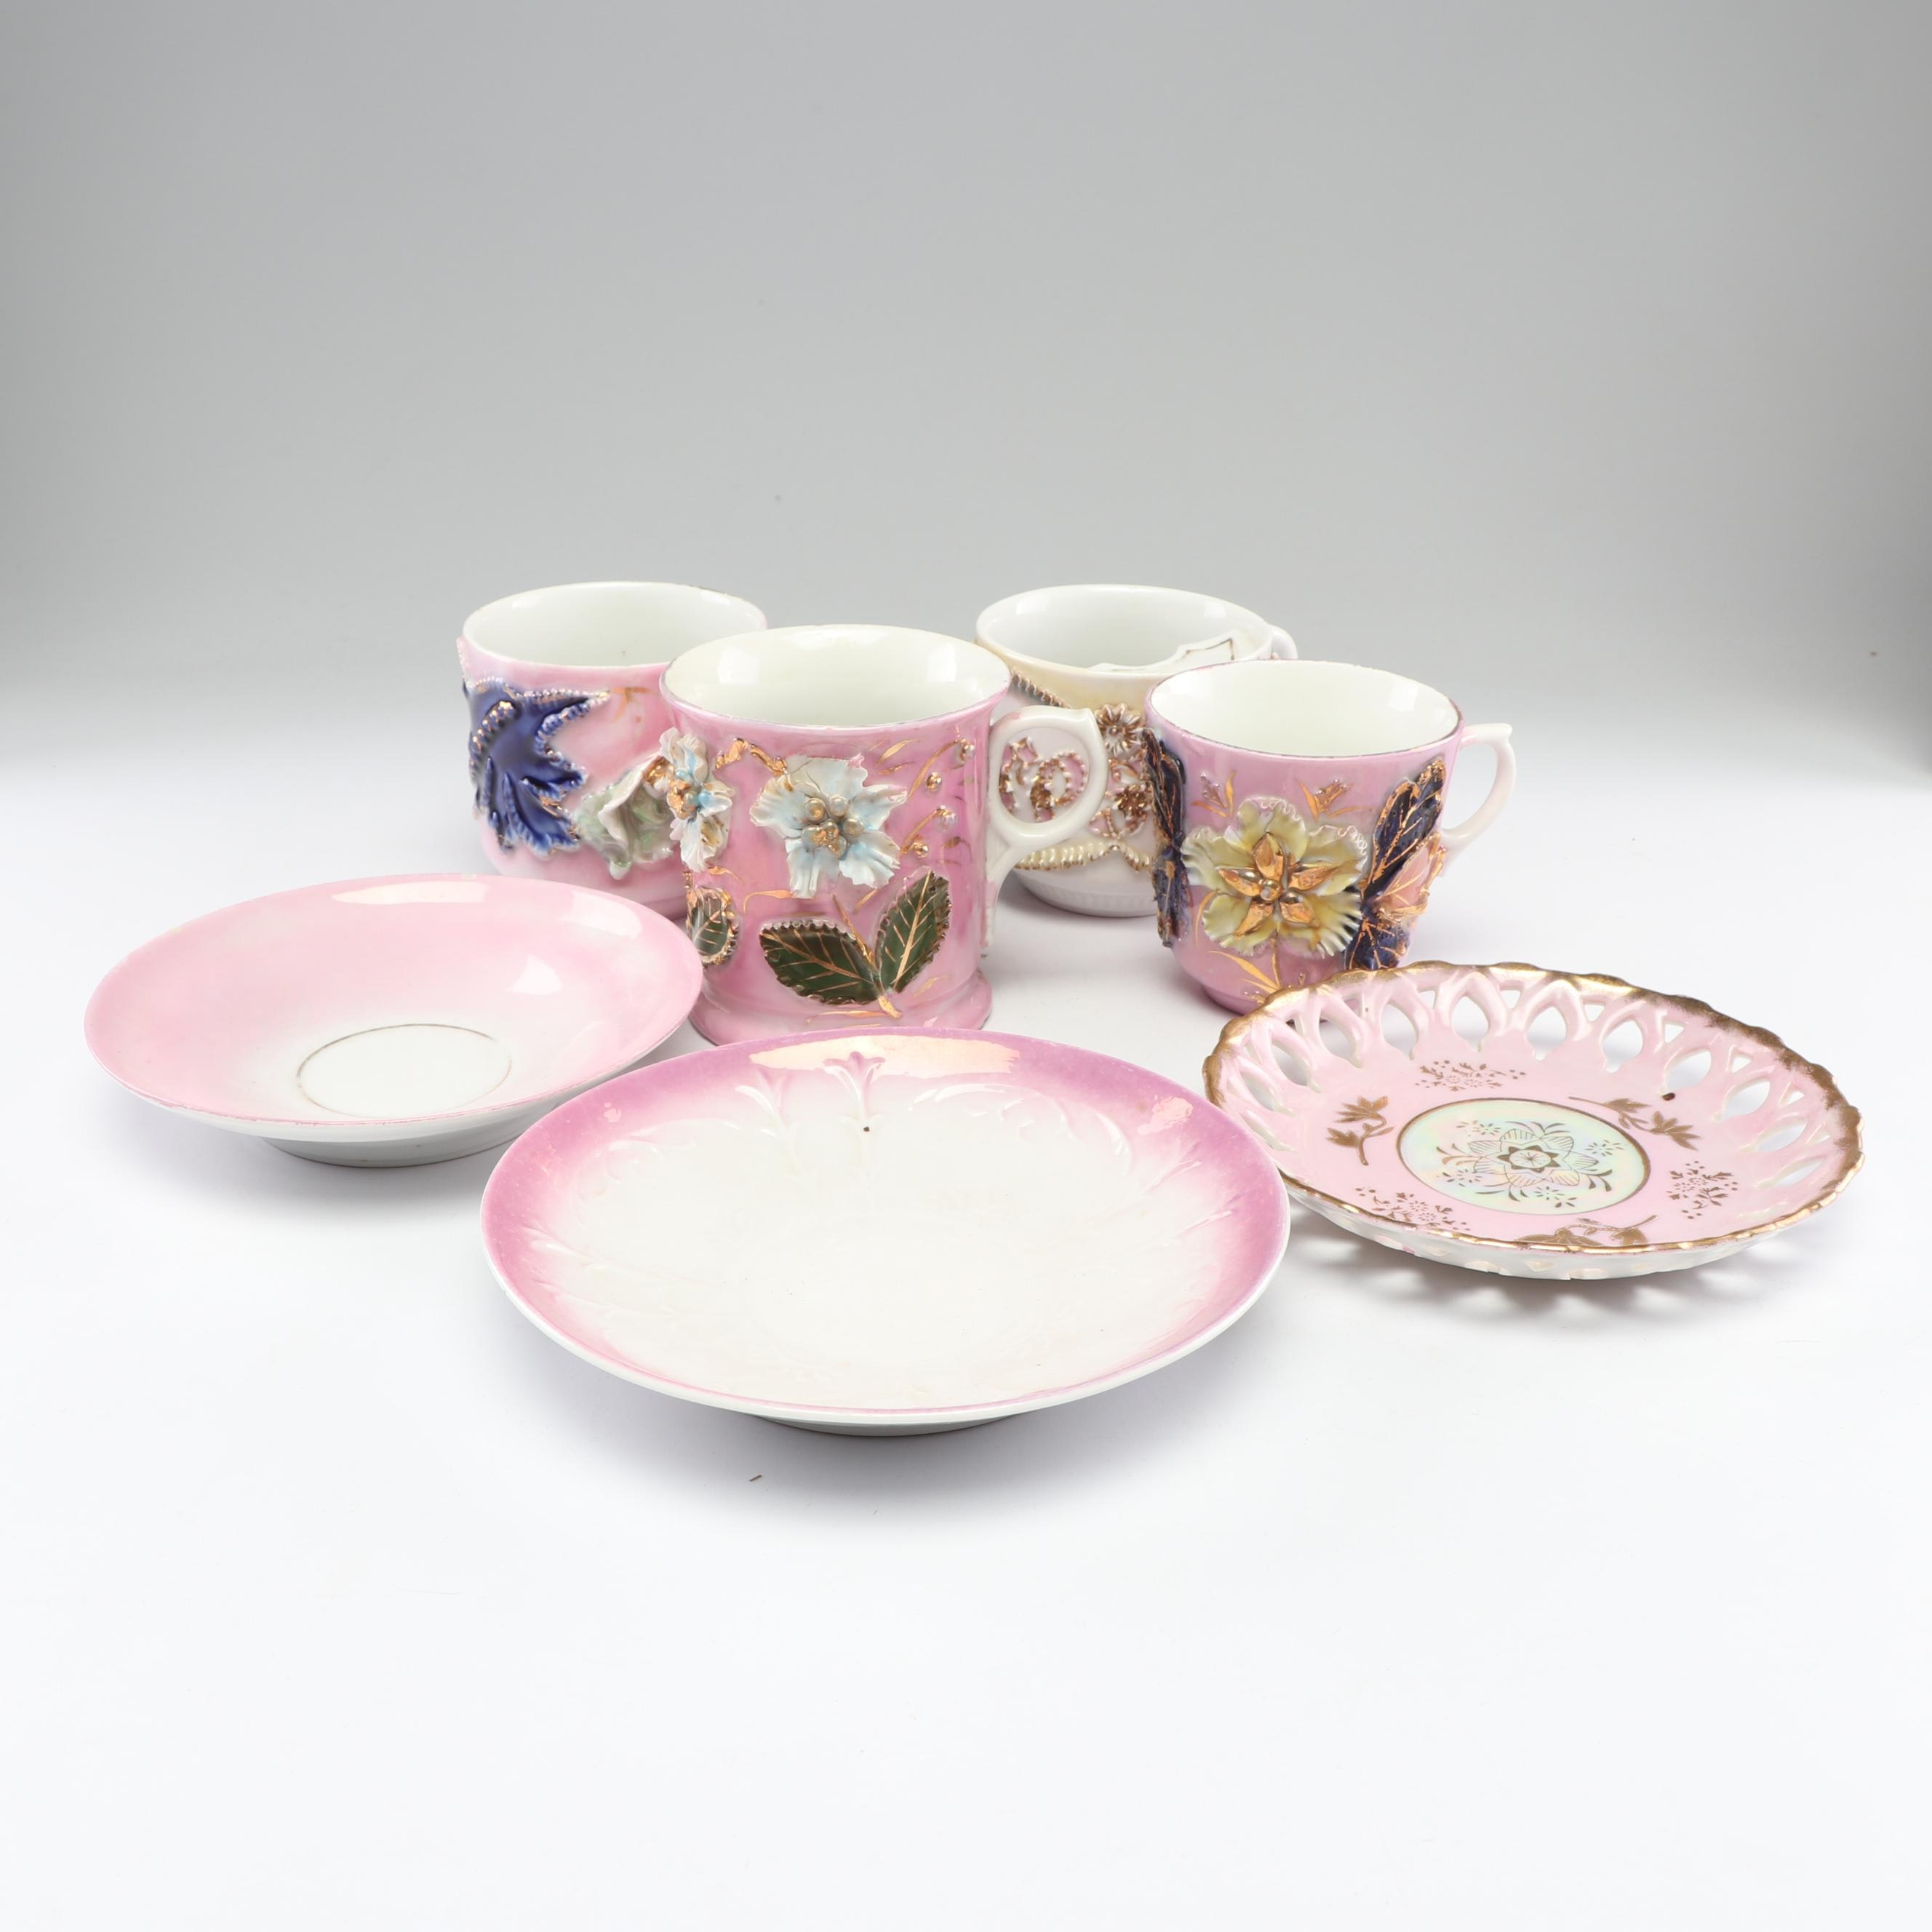 Victorian Mustache Cup with German Pink Lustreware Cups and Saucers